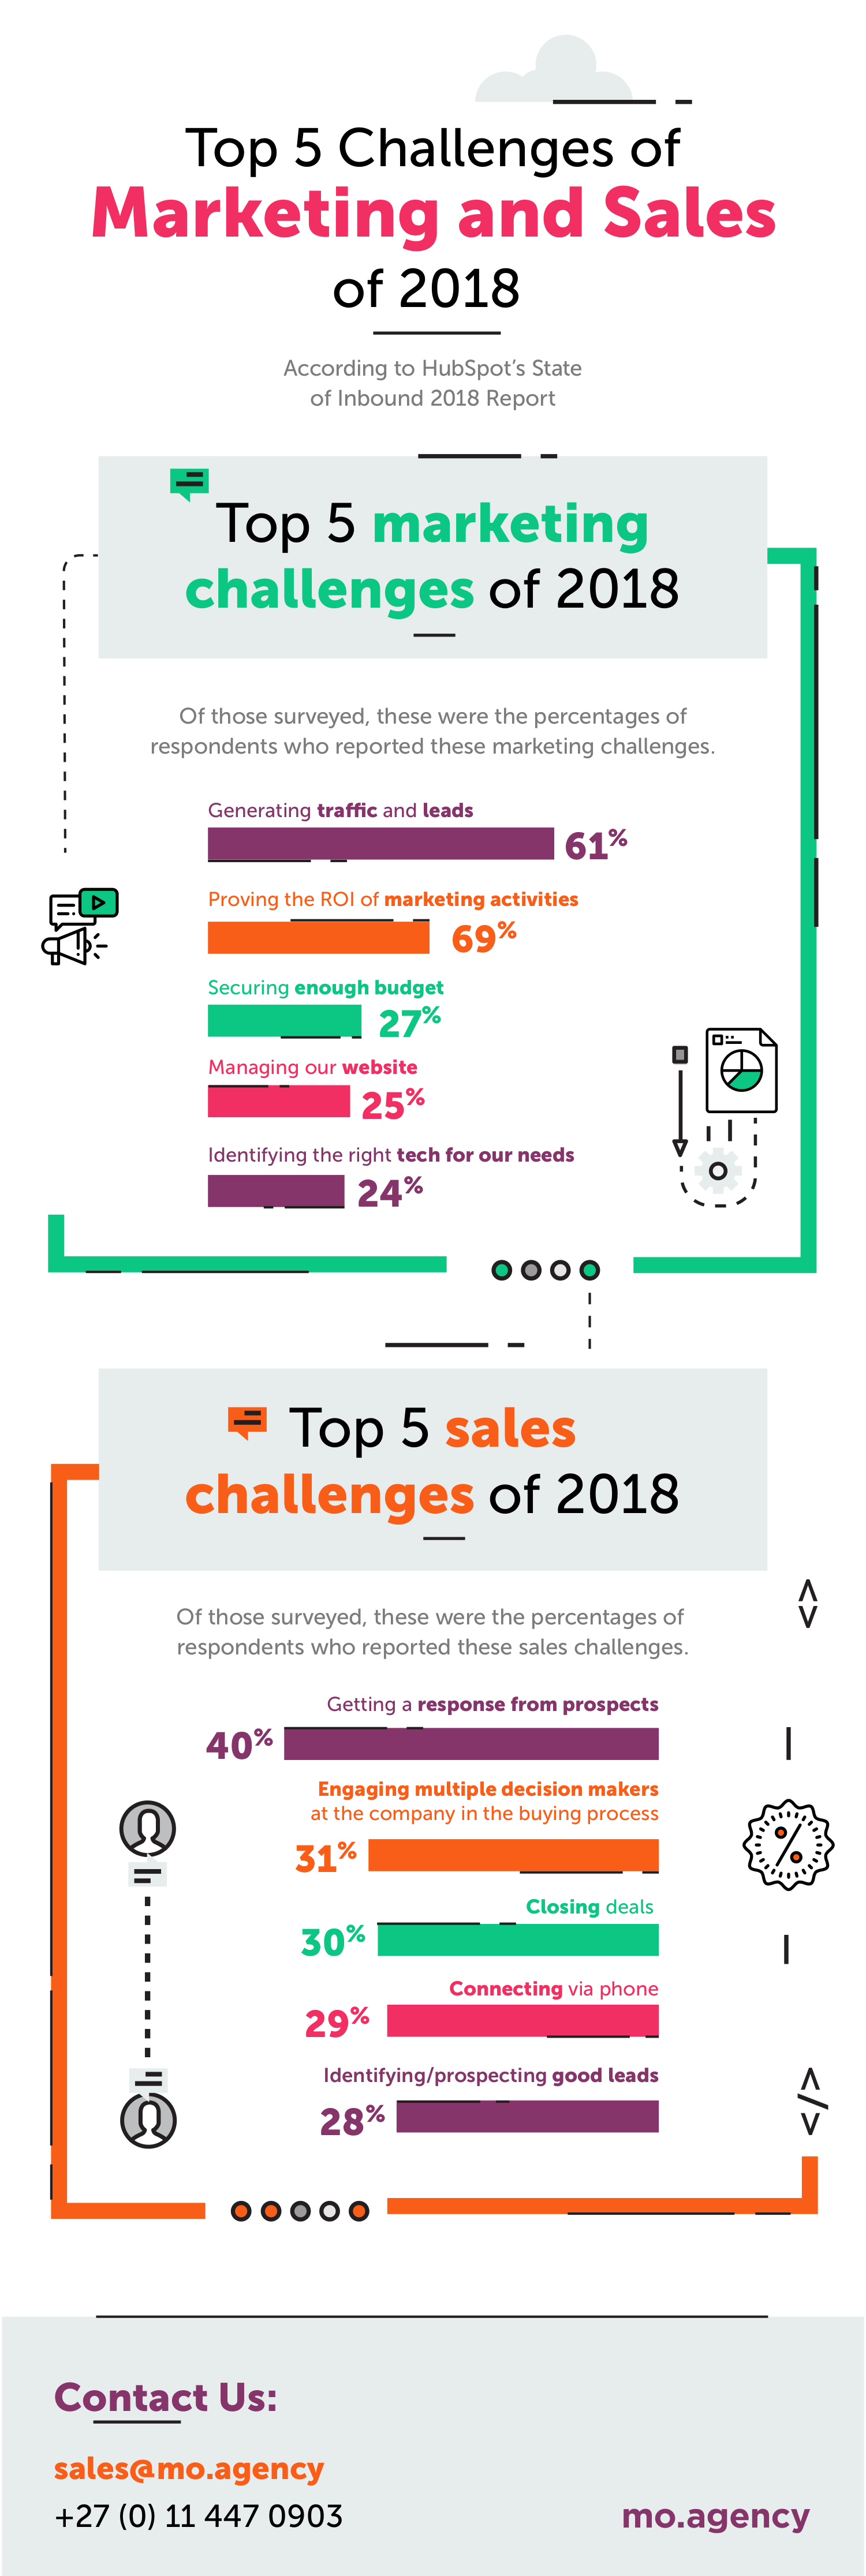 MO - Top 5 Challenges of Marketing and Sales - Infographic - 20180727